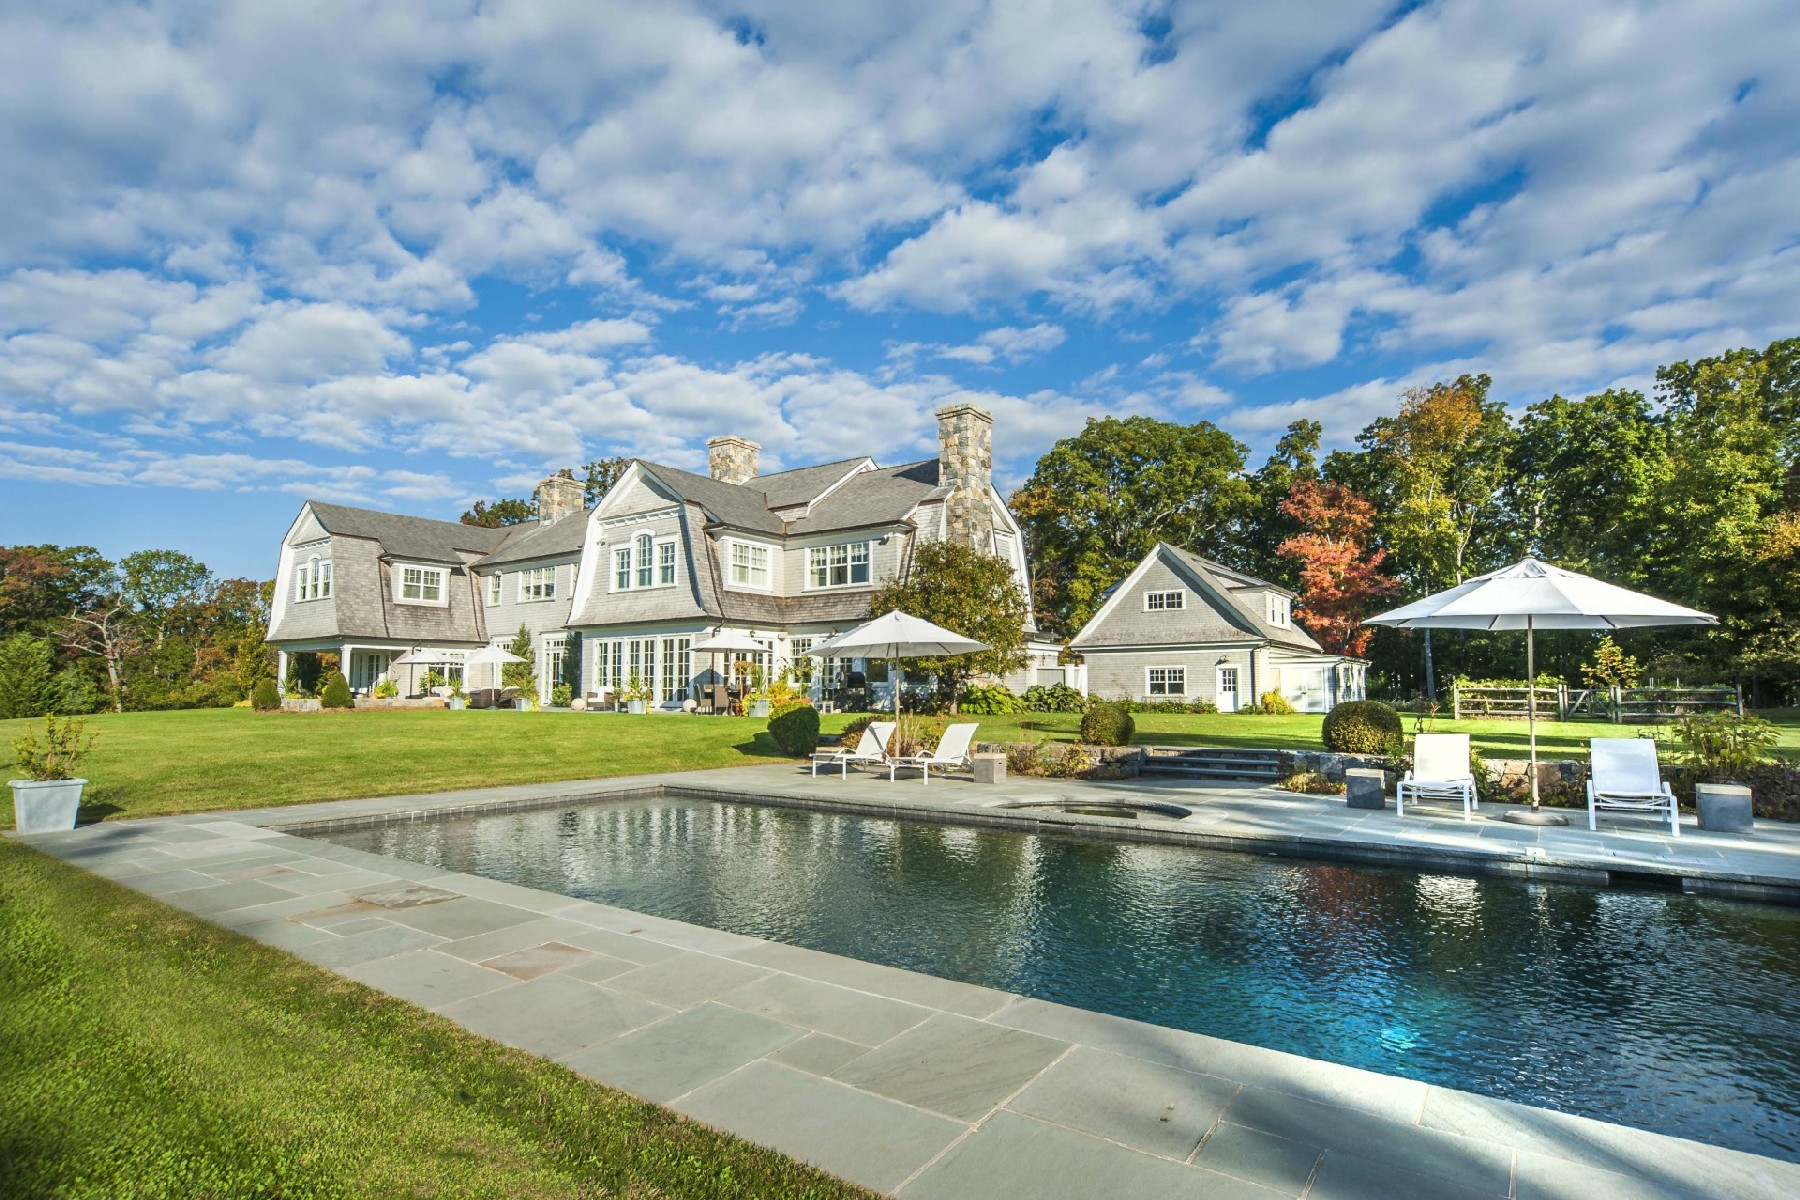 Villa per Vendita alle ore Magnificent Estate on 7.1 Acre Island 20 Juniper Road Darien, Connecticut, 06820 Stati Uniti